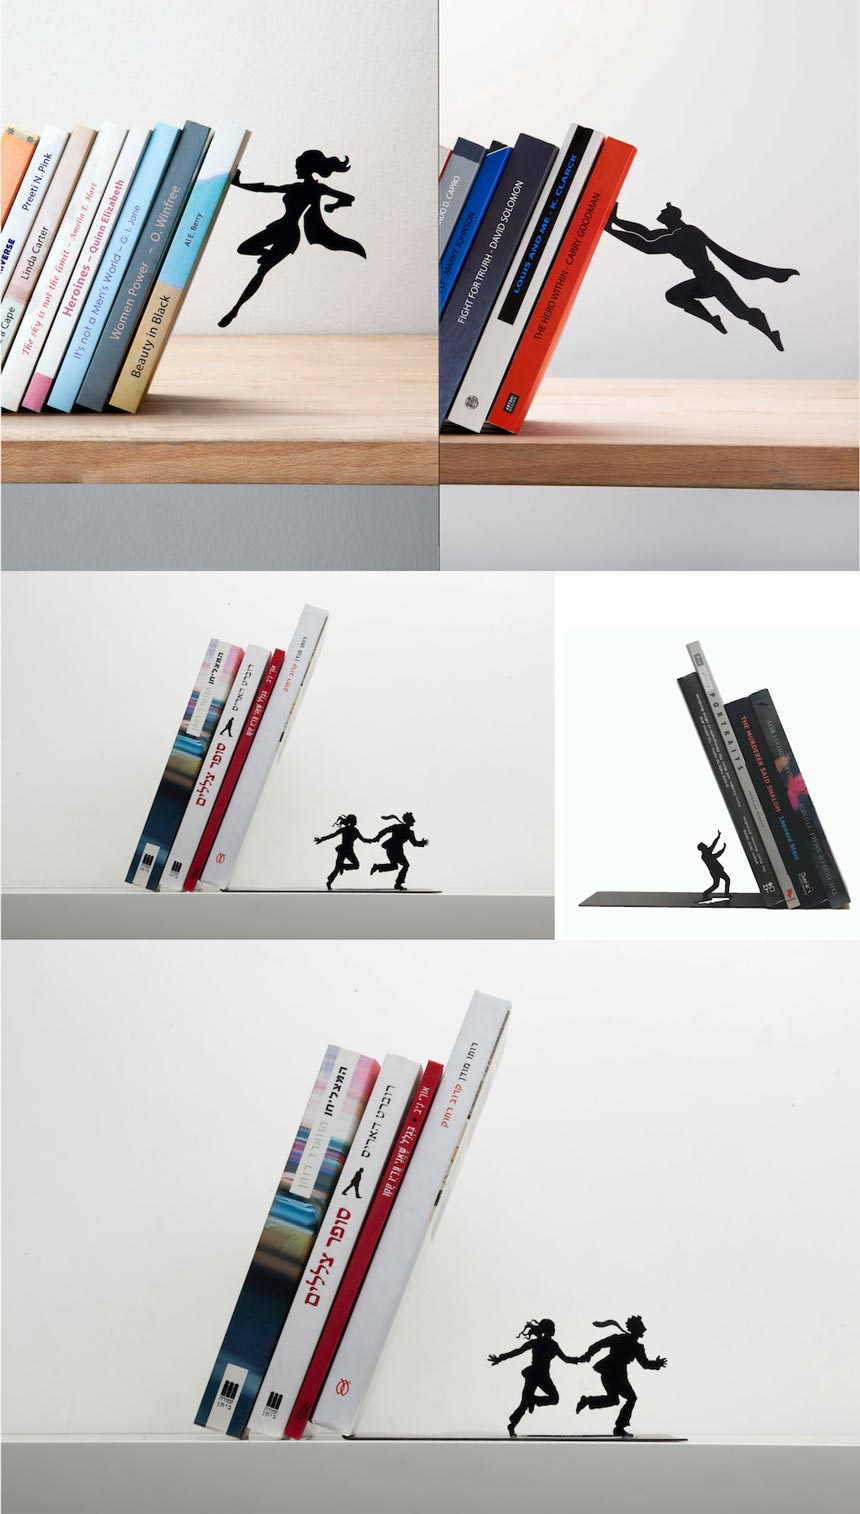 Teen bedroom decorating ideas - funky bookstands. Images by Animi Causa for some interesting book ends featuring the black silhouettes of superwoman, superman or a couple running.